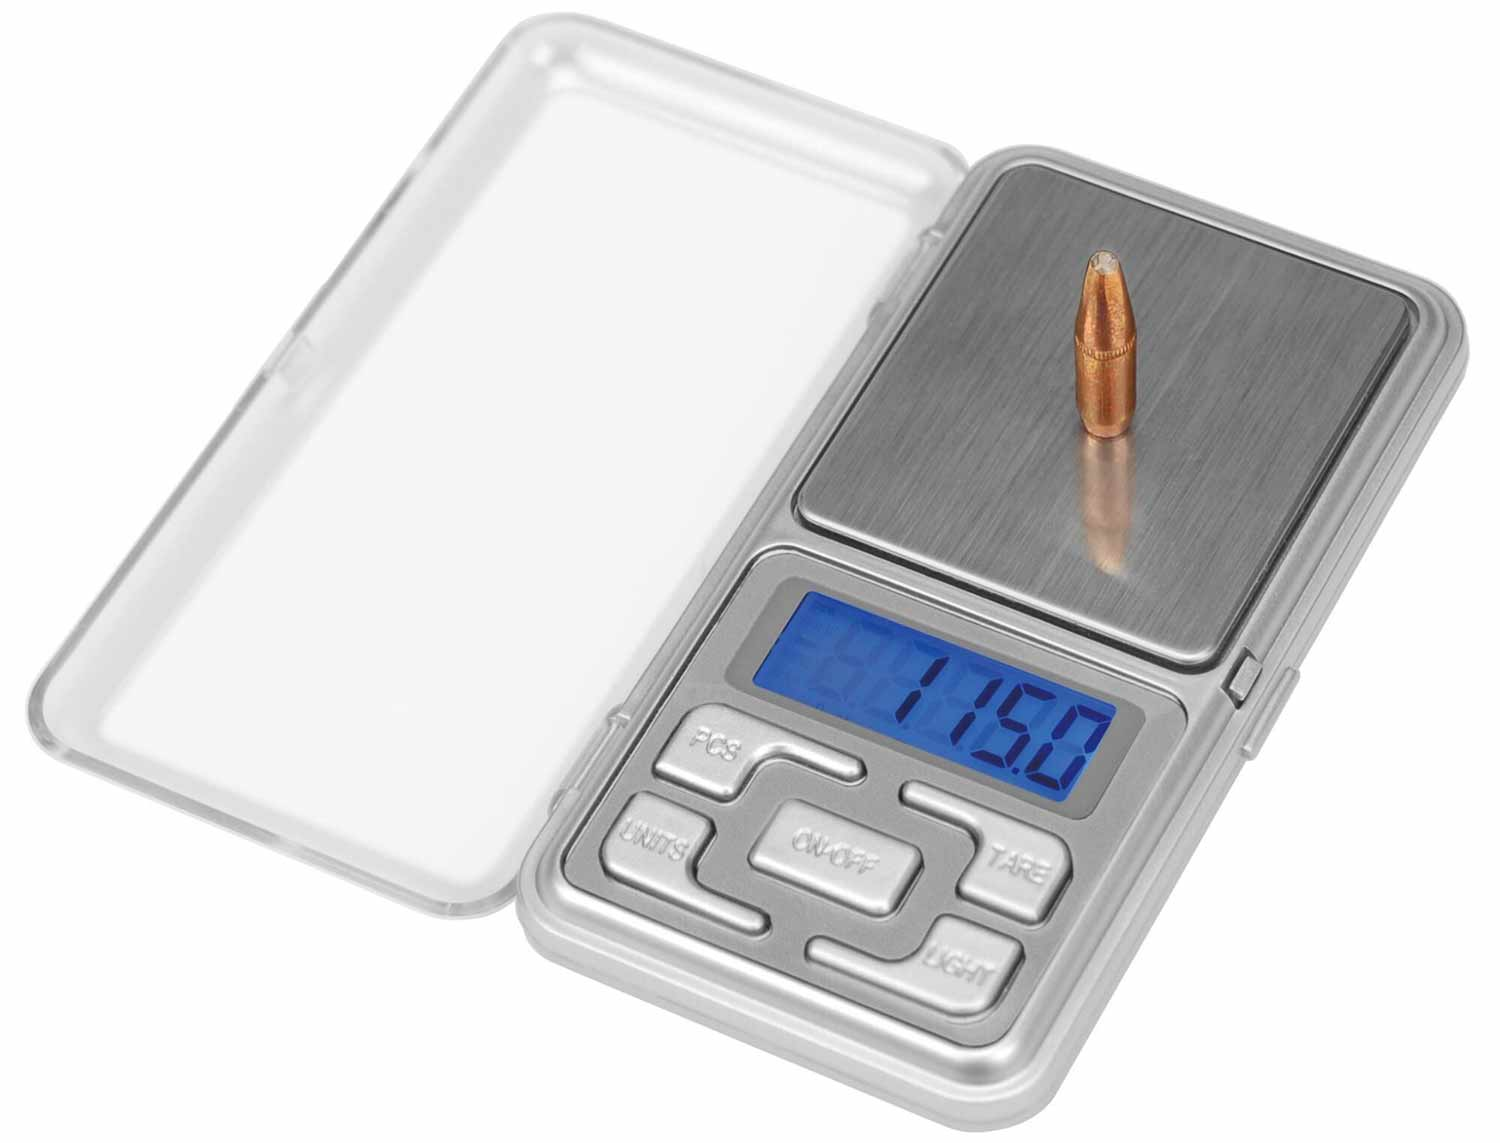 Frankford Arsenal DS-750 digital reloading scales